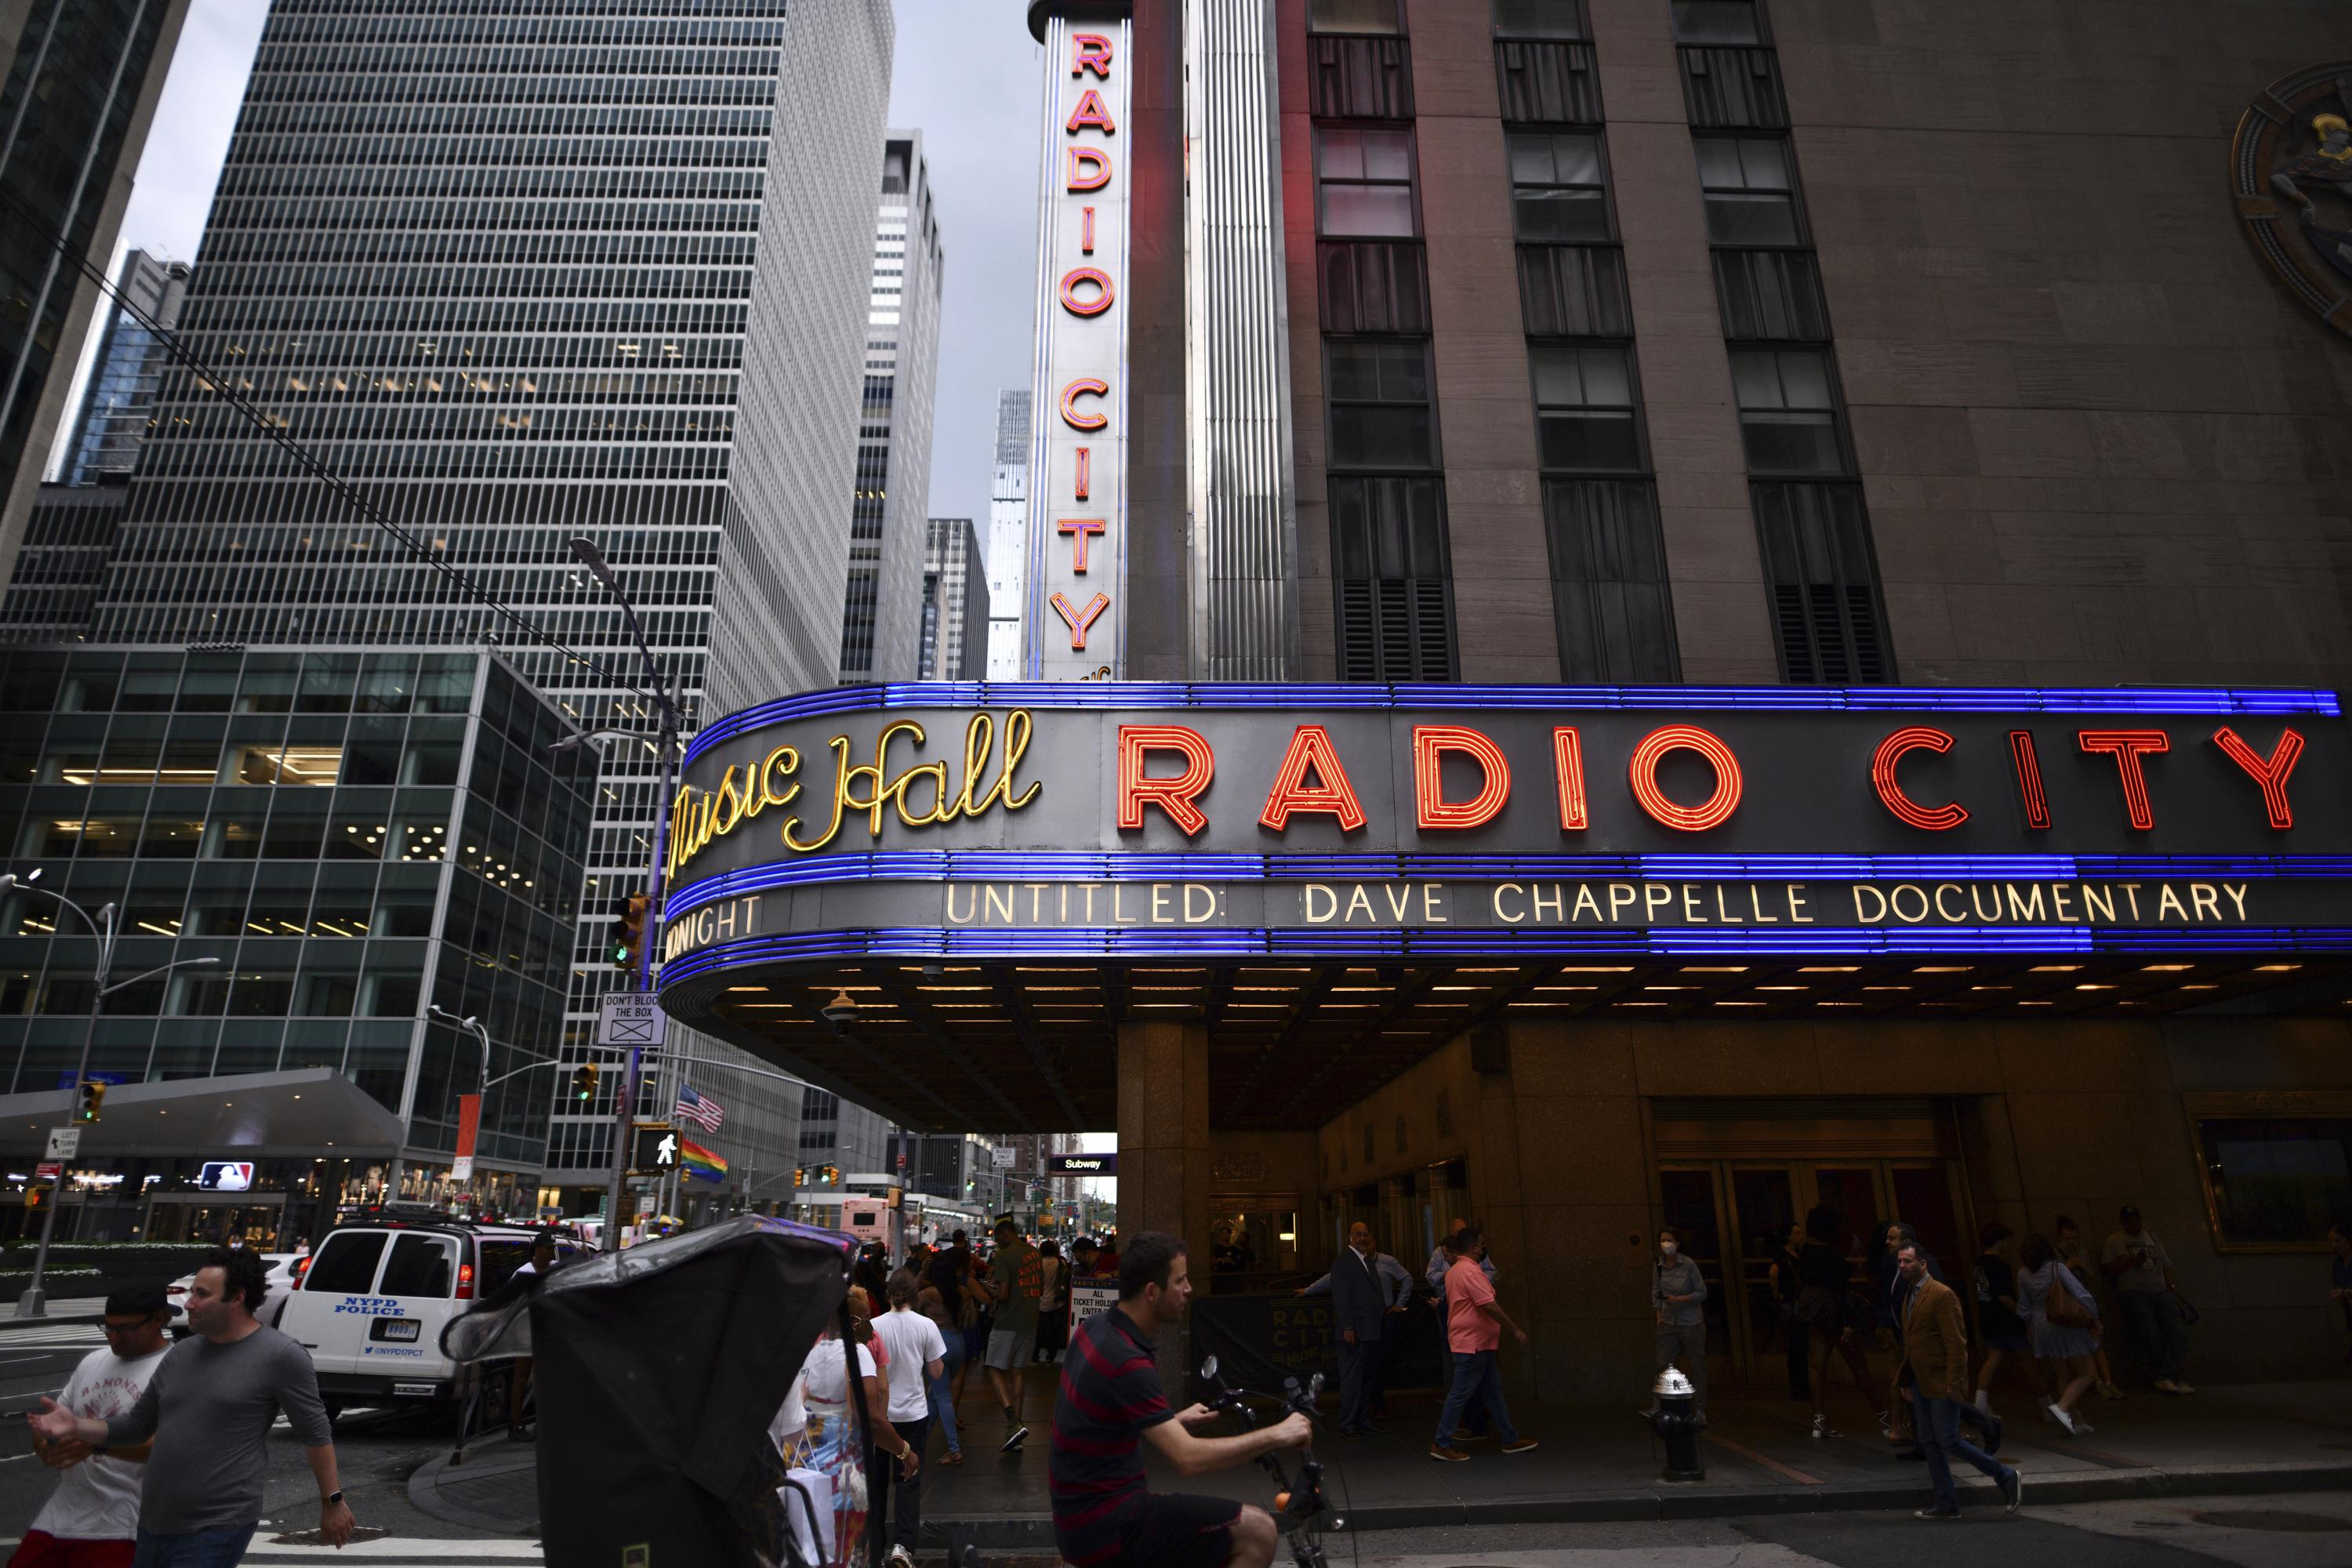 15 months later, Radio City reopens with Dave Chappelle